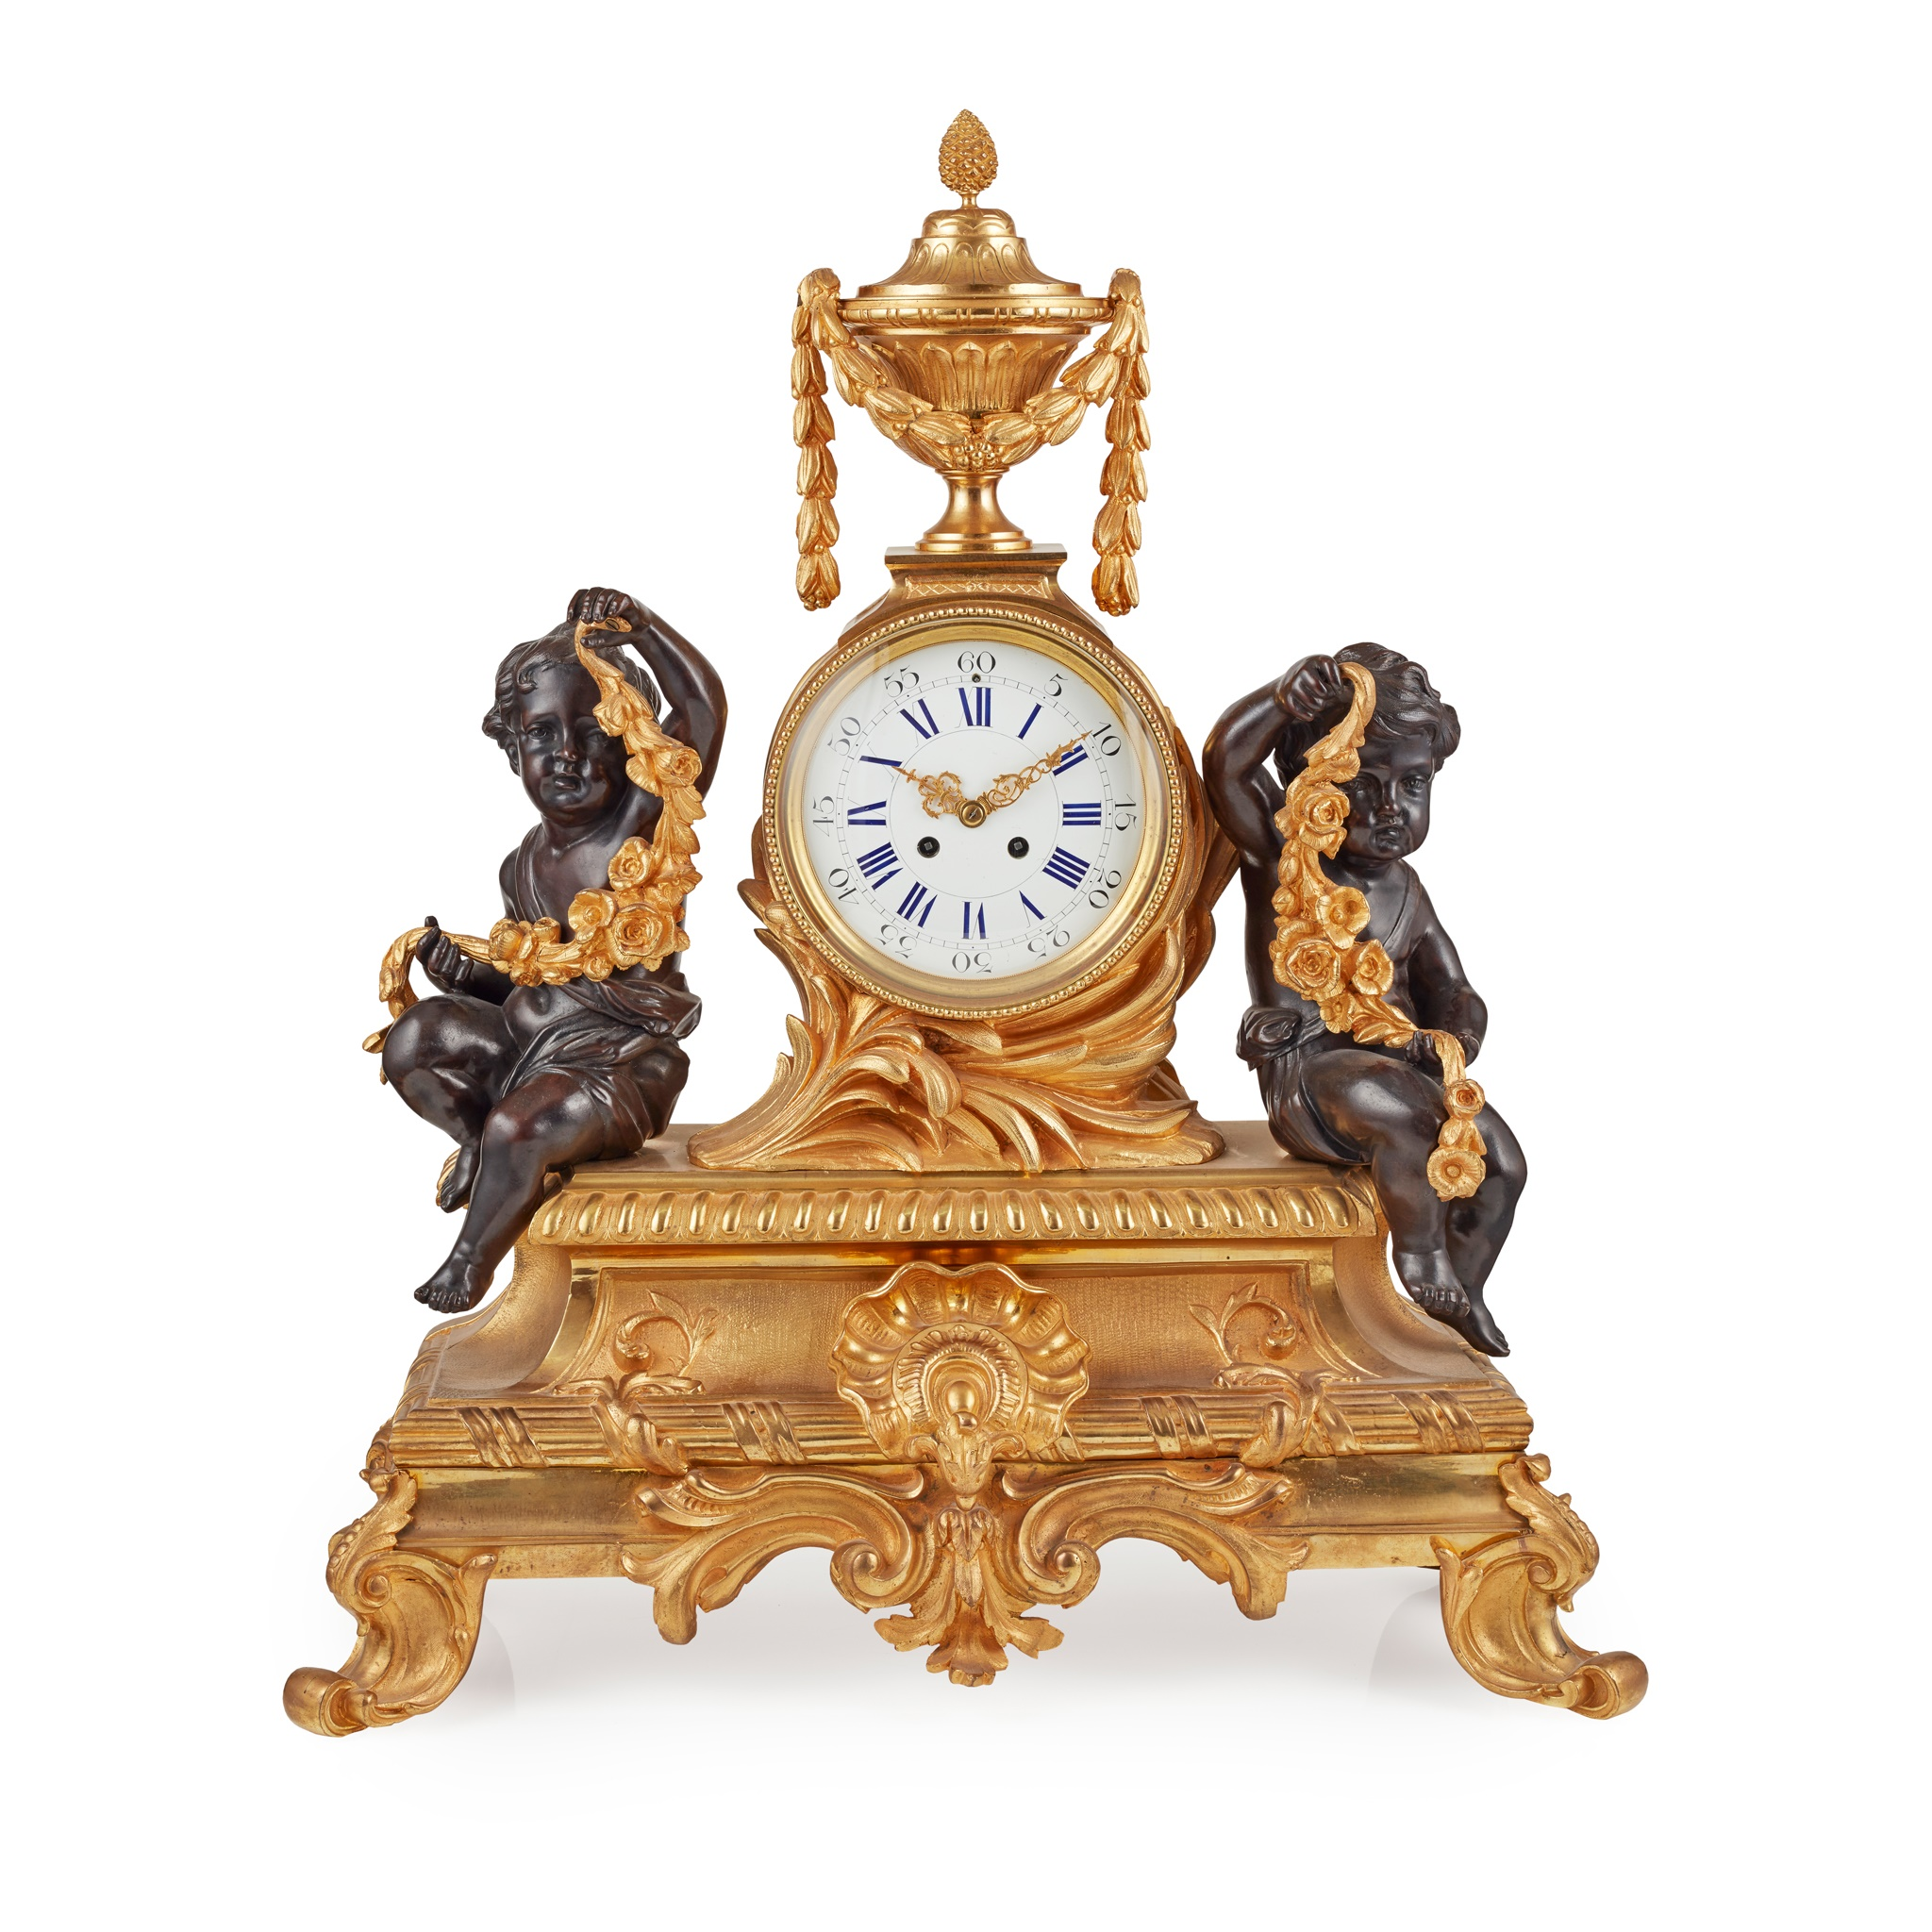 LARGE FRENCH GILT AND PATINATED BRONZE MANTEL CLOCK 19TH CENTURY